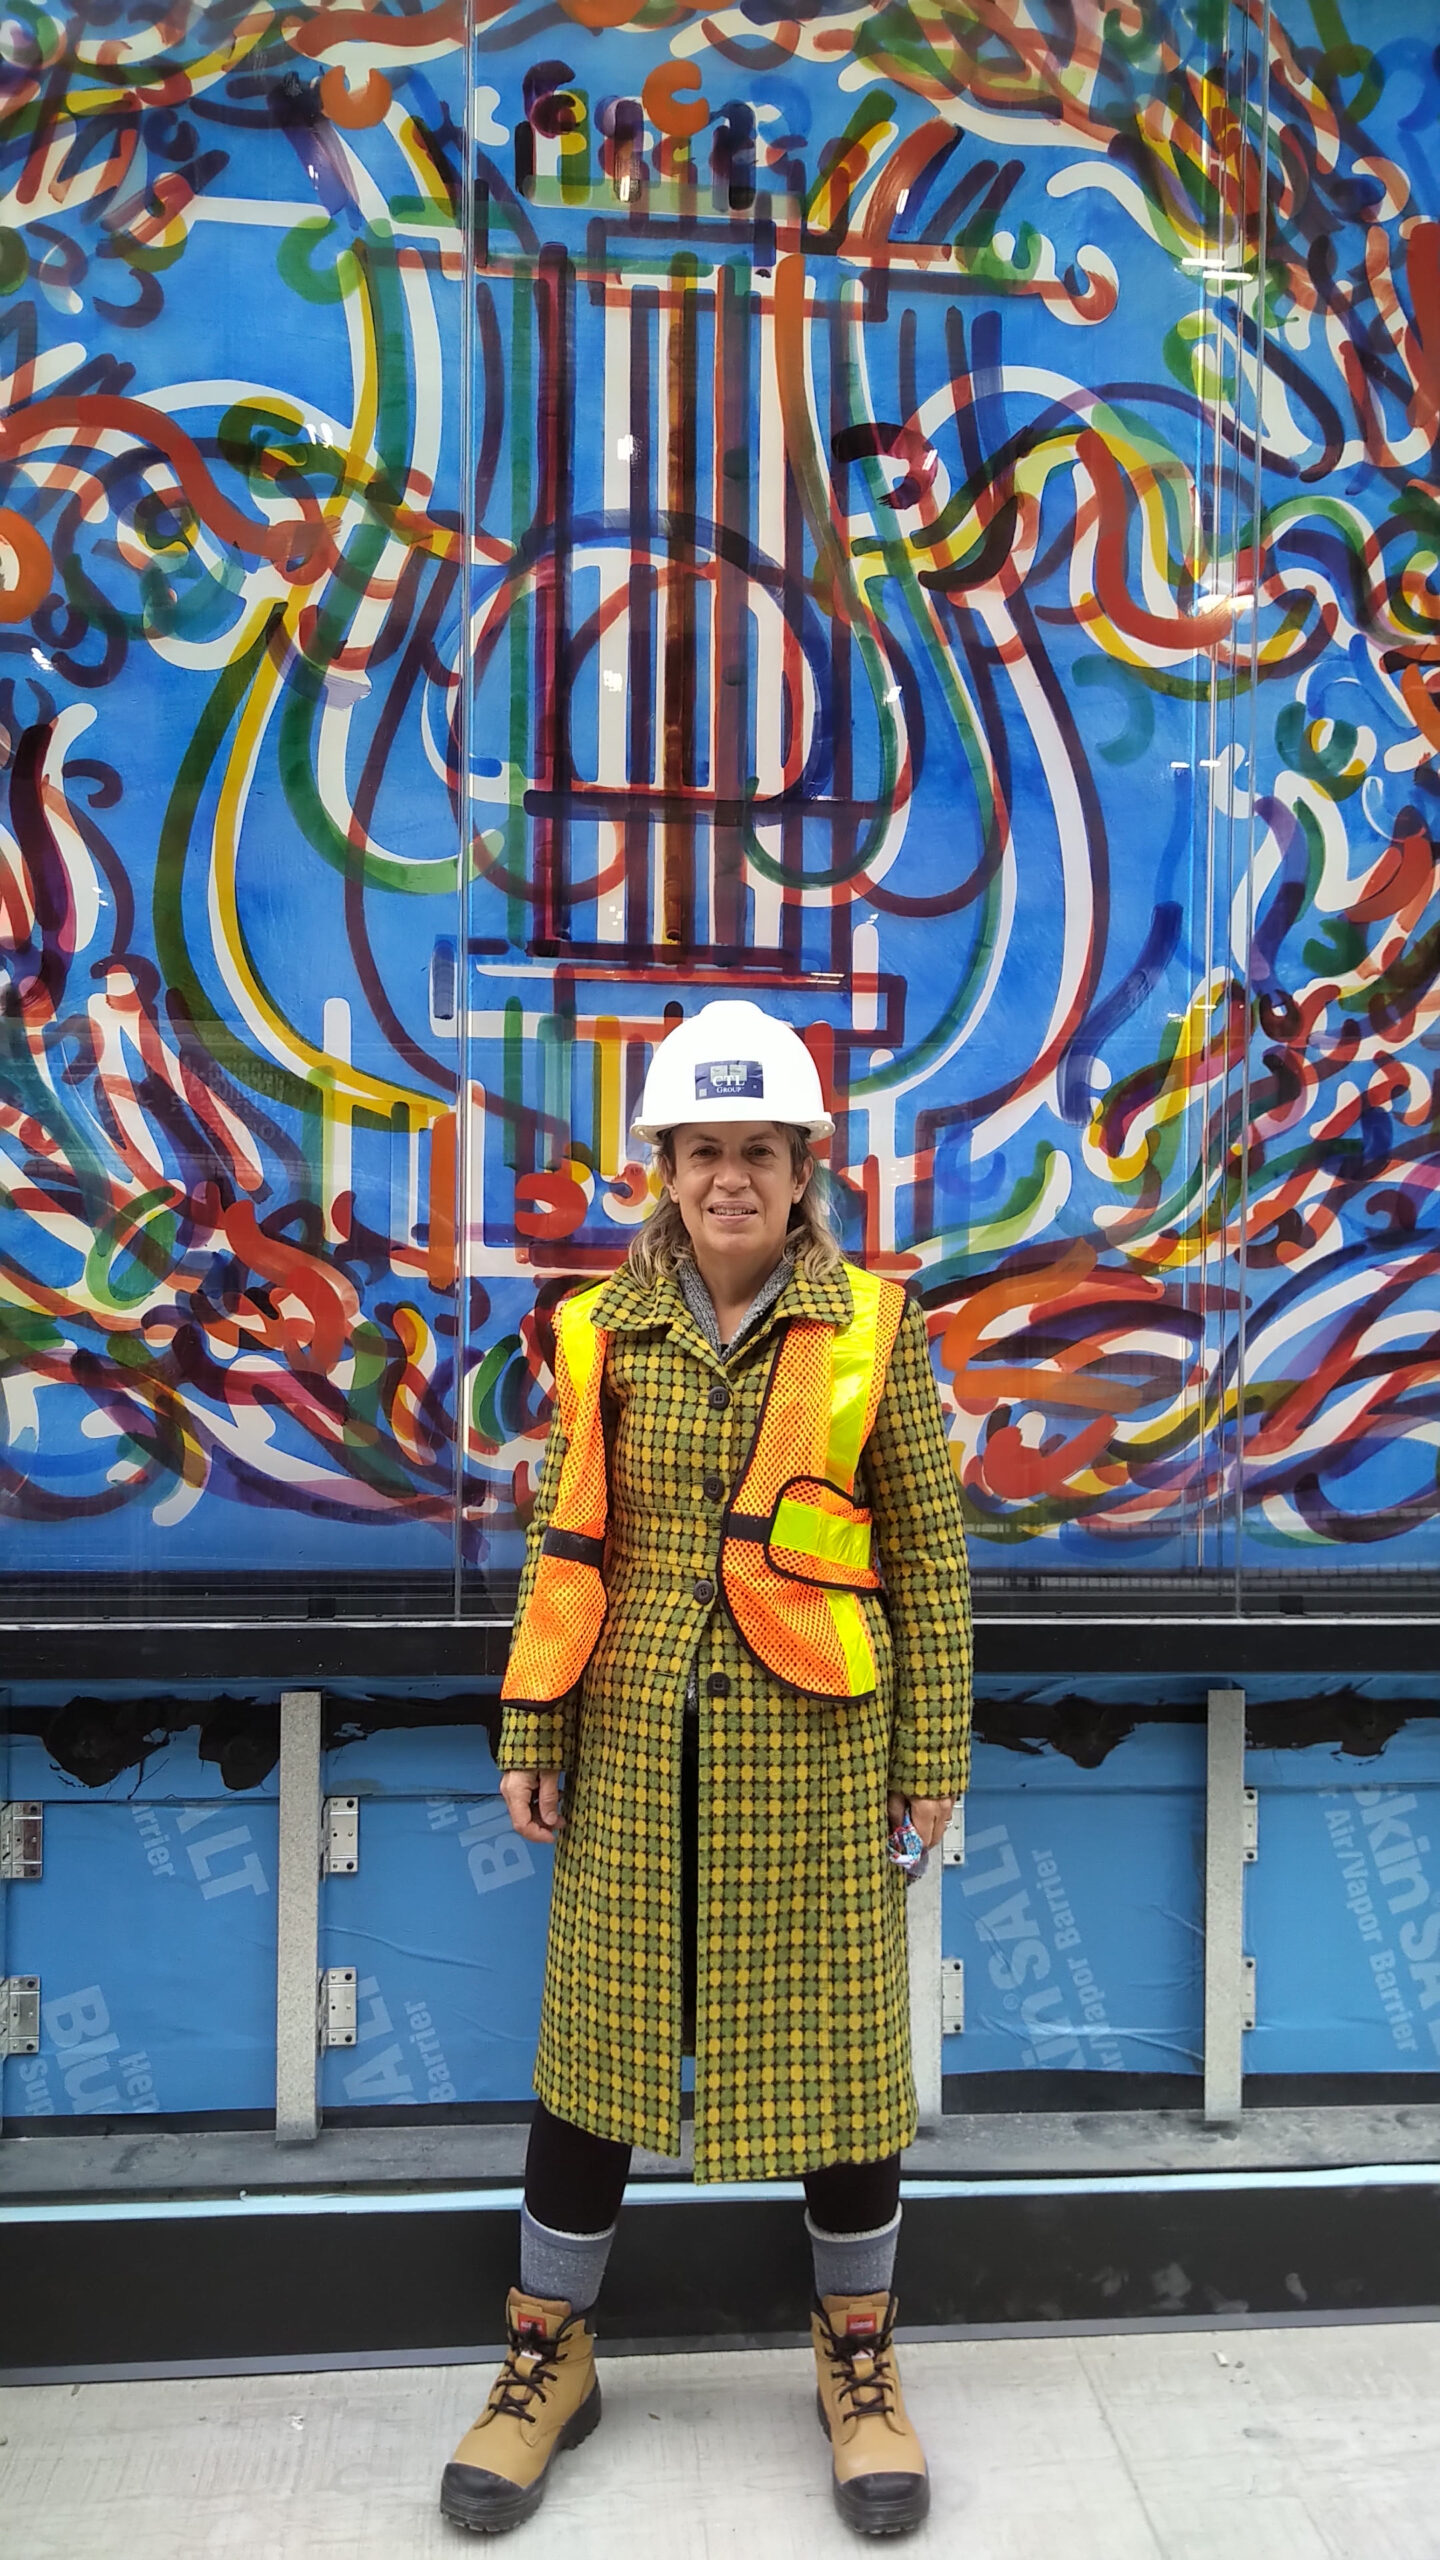 Katharine Harvey in Hard Hat outside of Toronto Public Art - Shea's Victoria